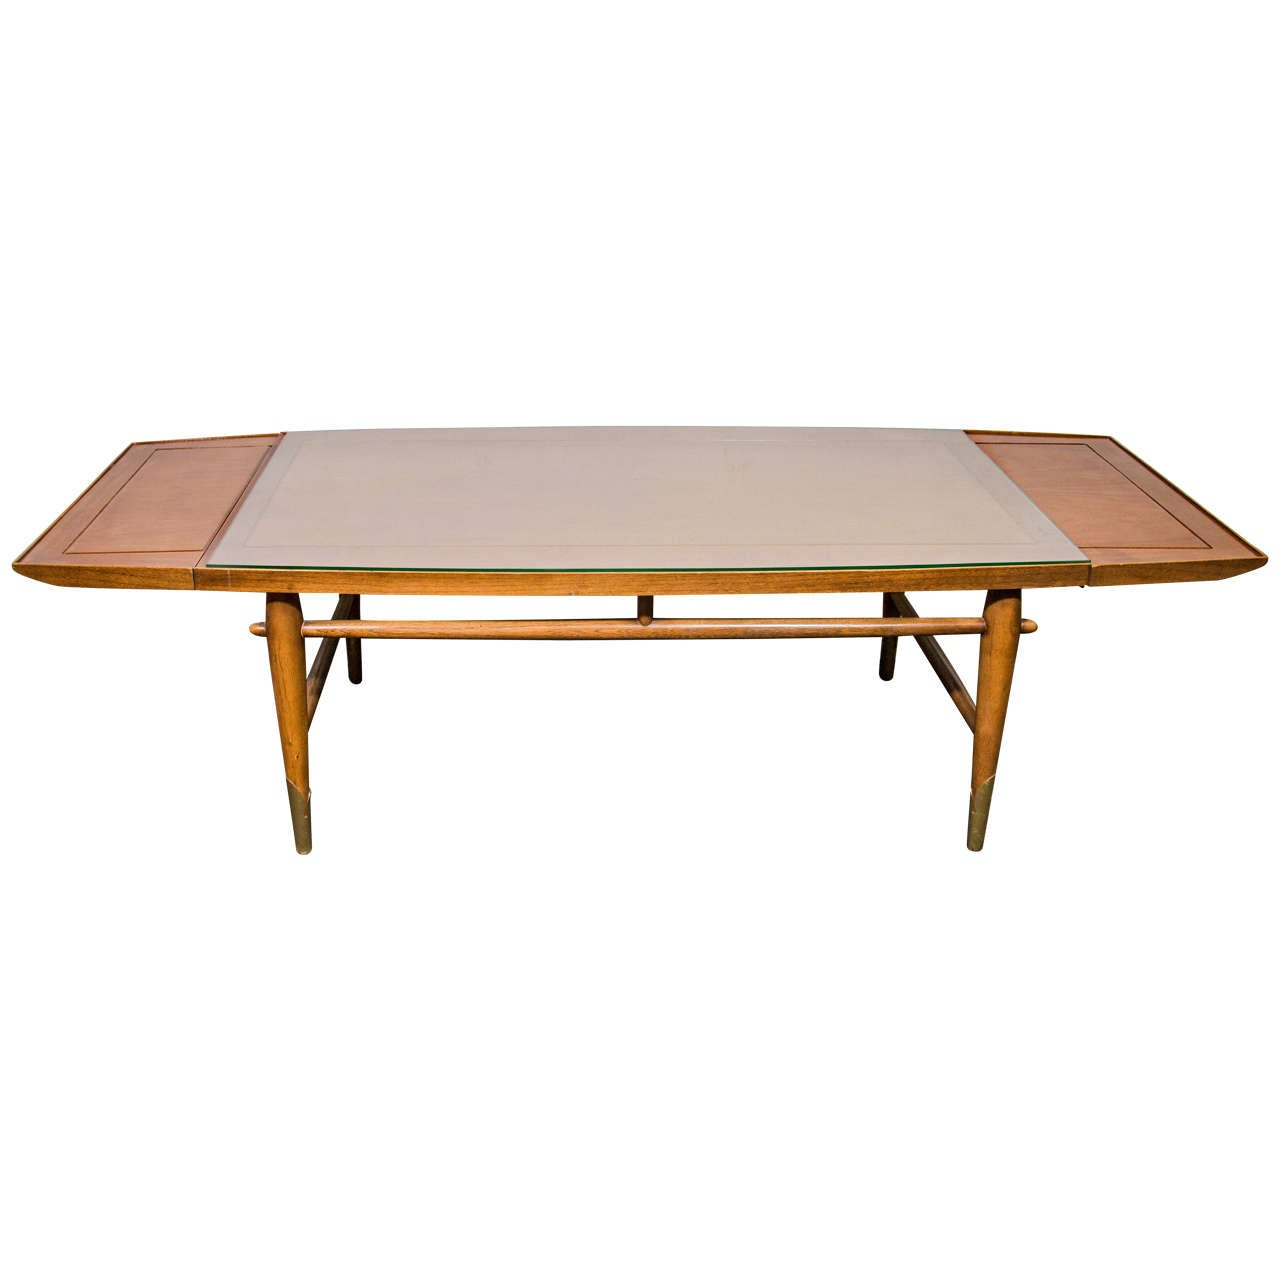 Midcentury Drop Leaf Wooden Coffee Or Cocktail Table With